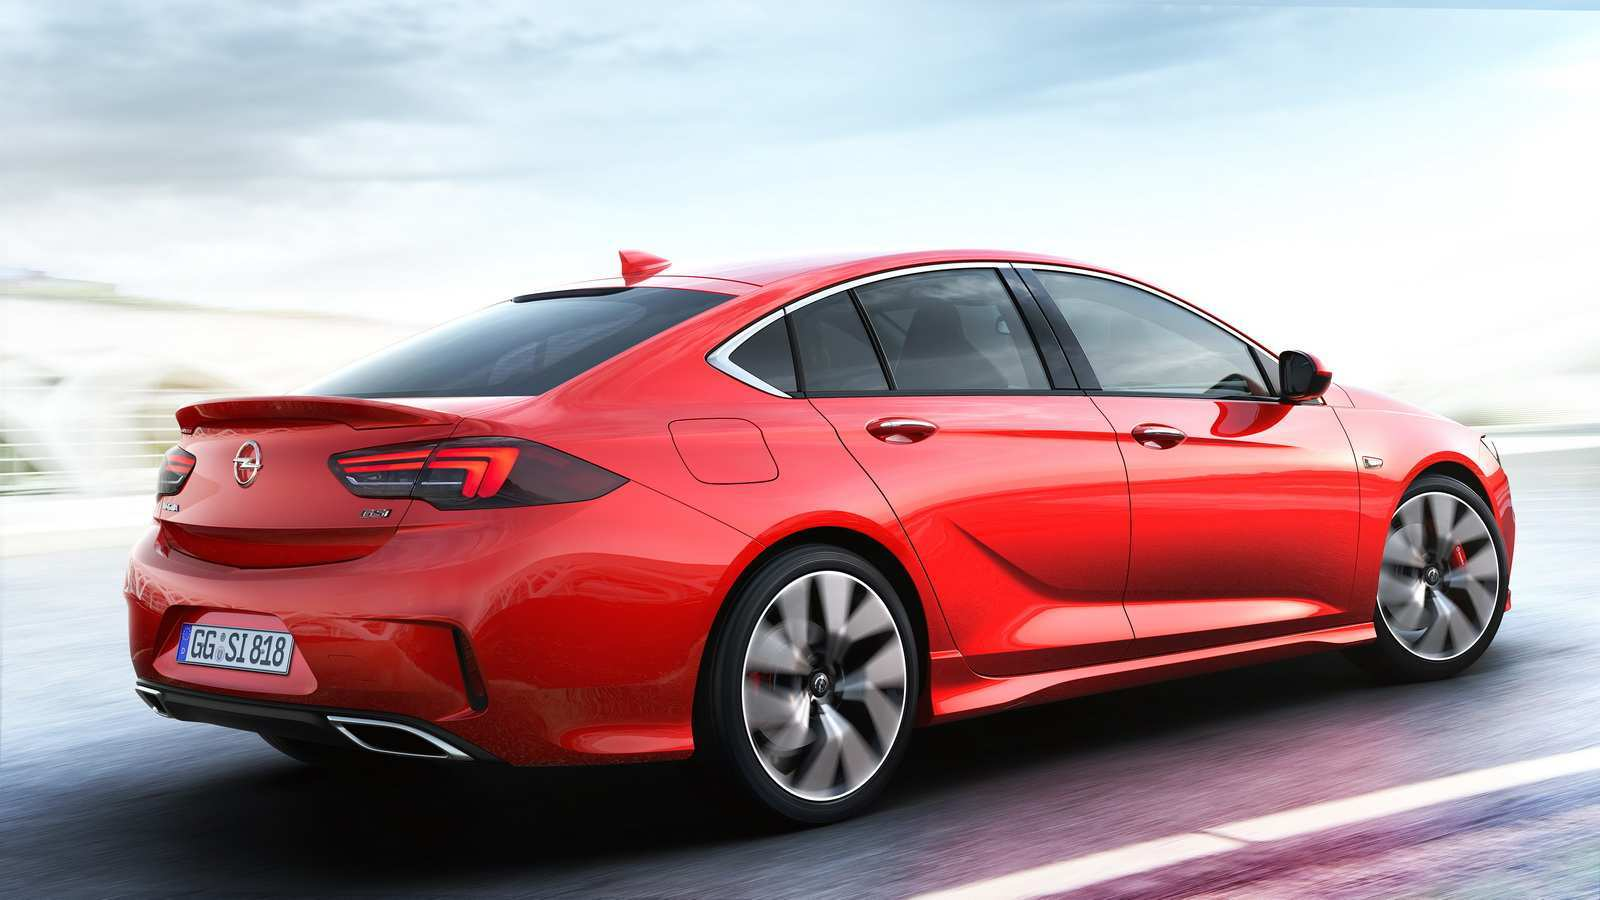 23 New Opel Insignia Opc 2020 Overview with Opel Insignia Opc 2020